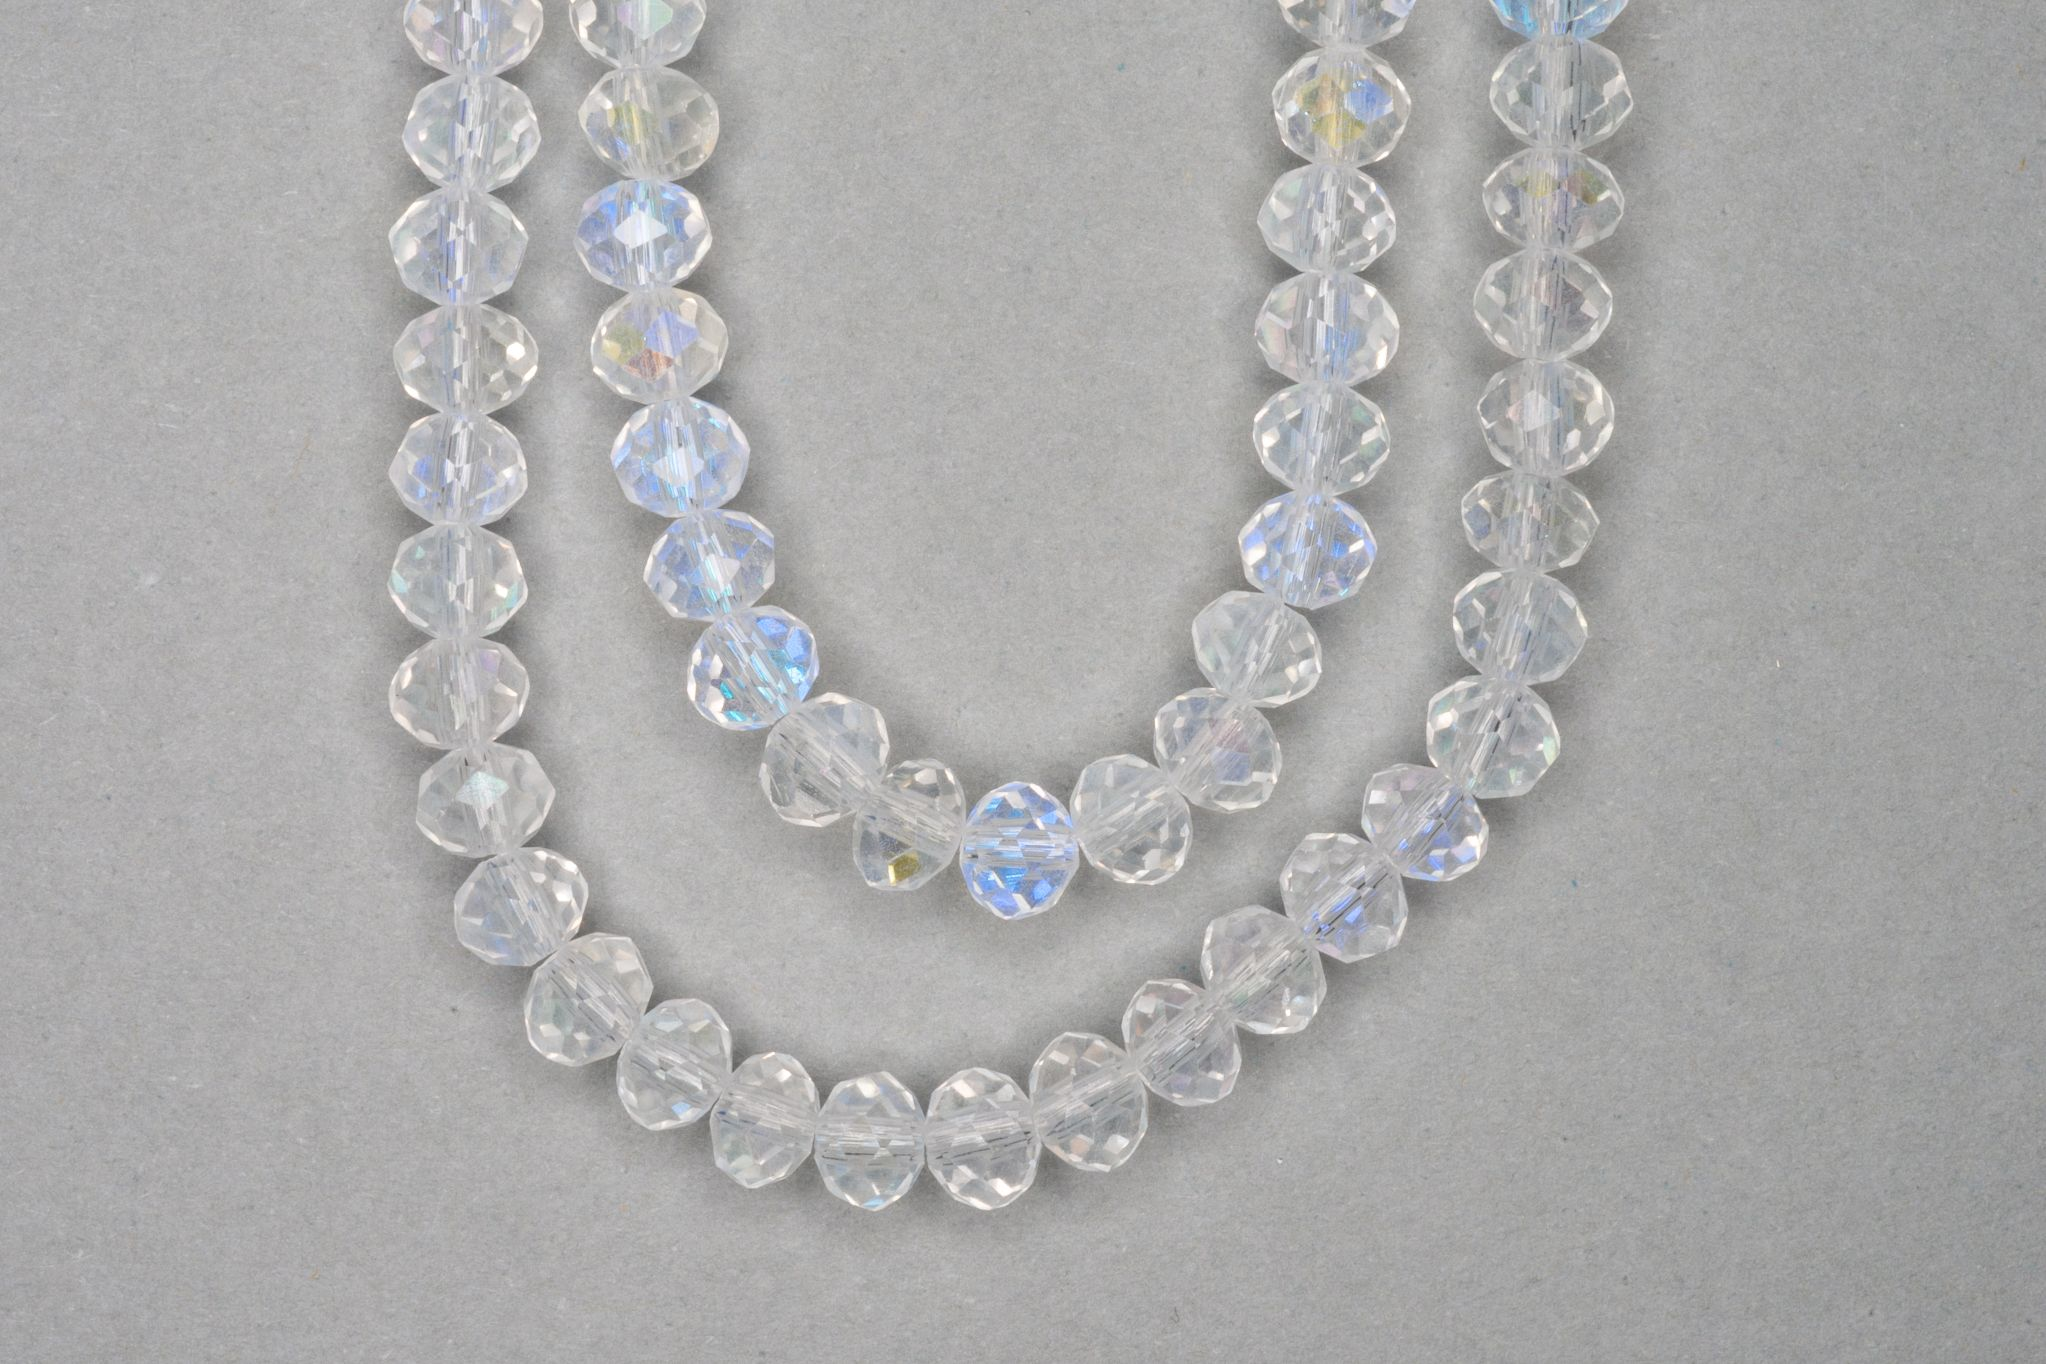 AB Clear Faceted Glass Beads